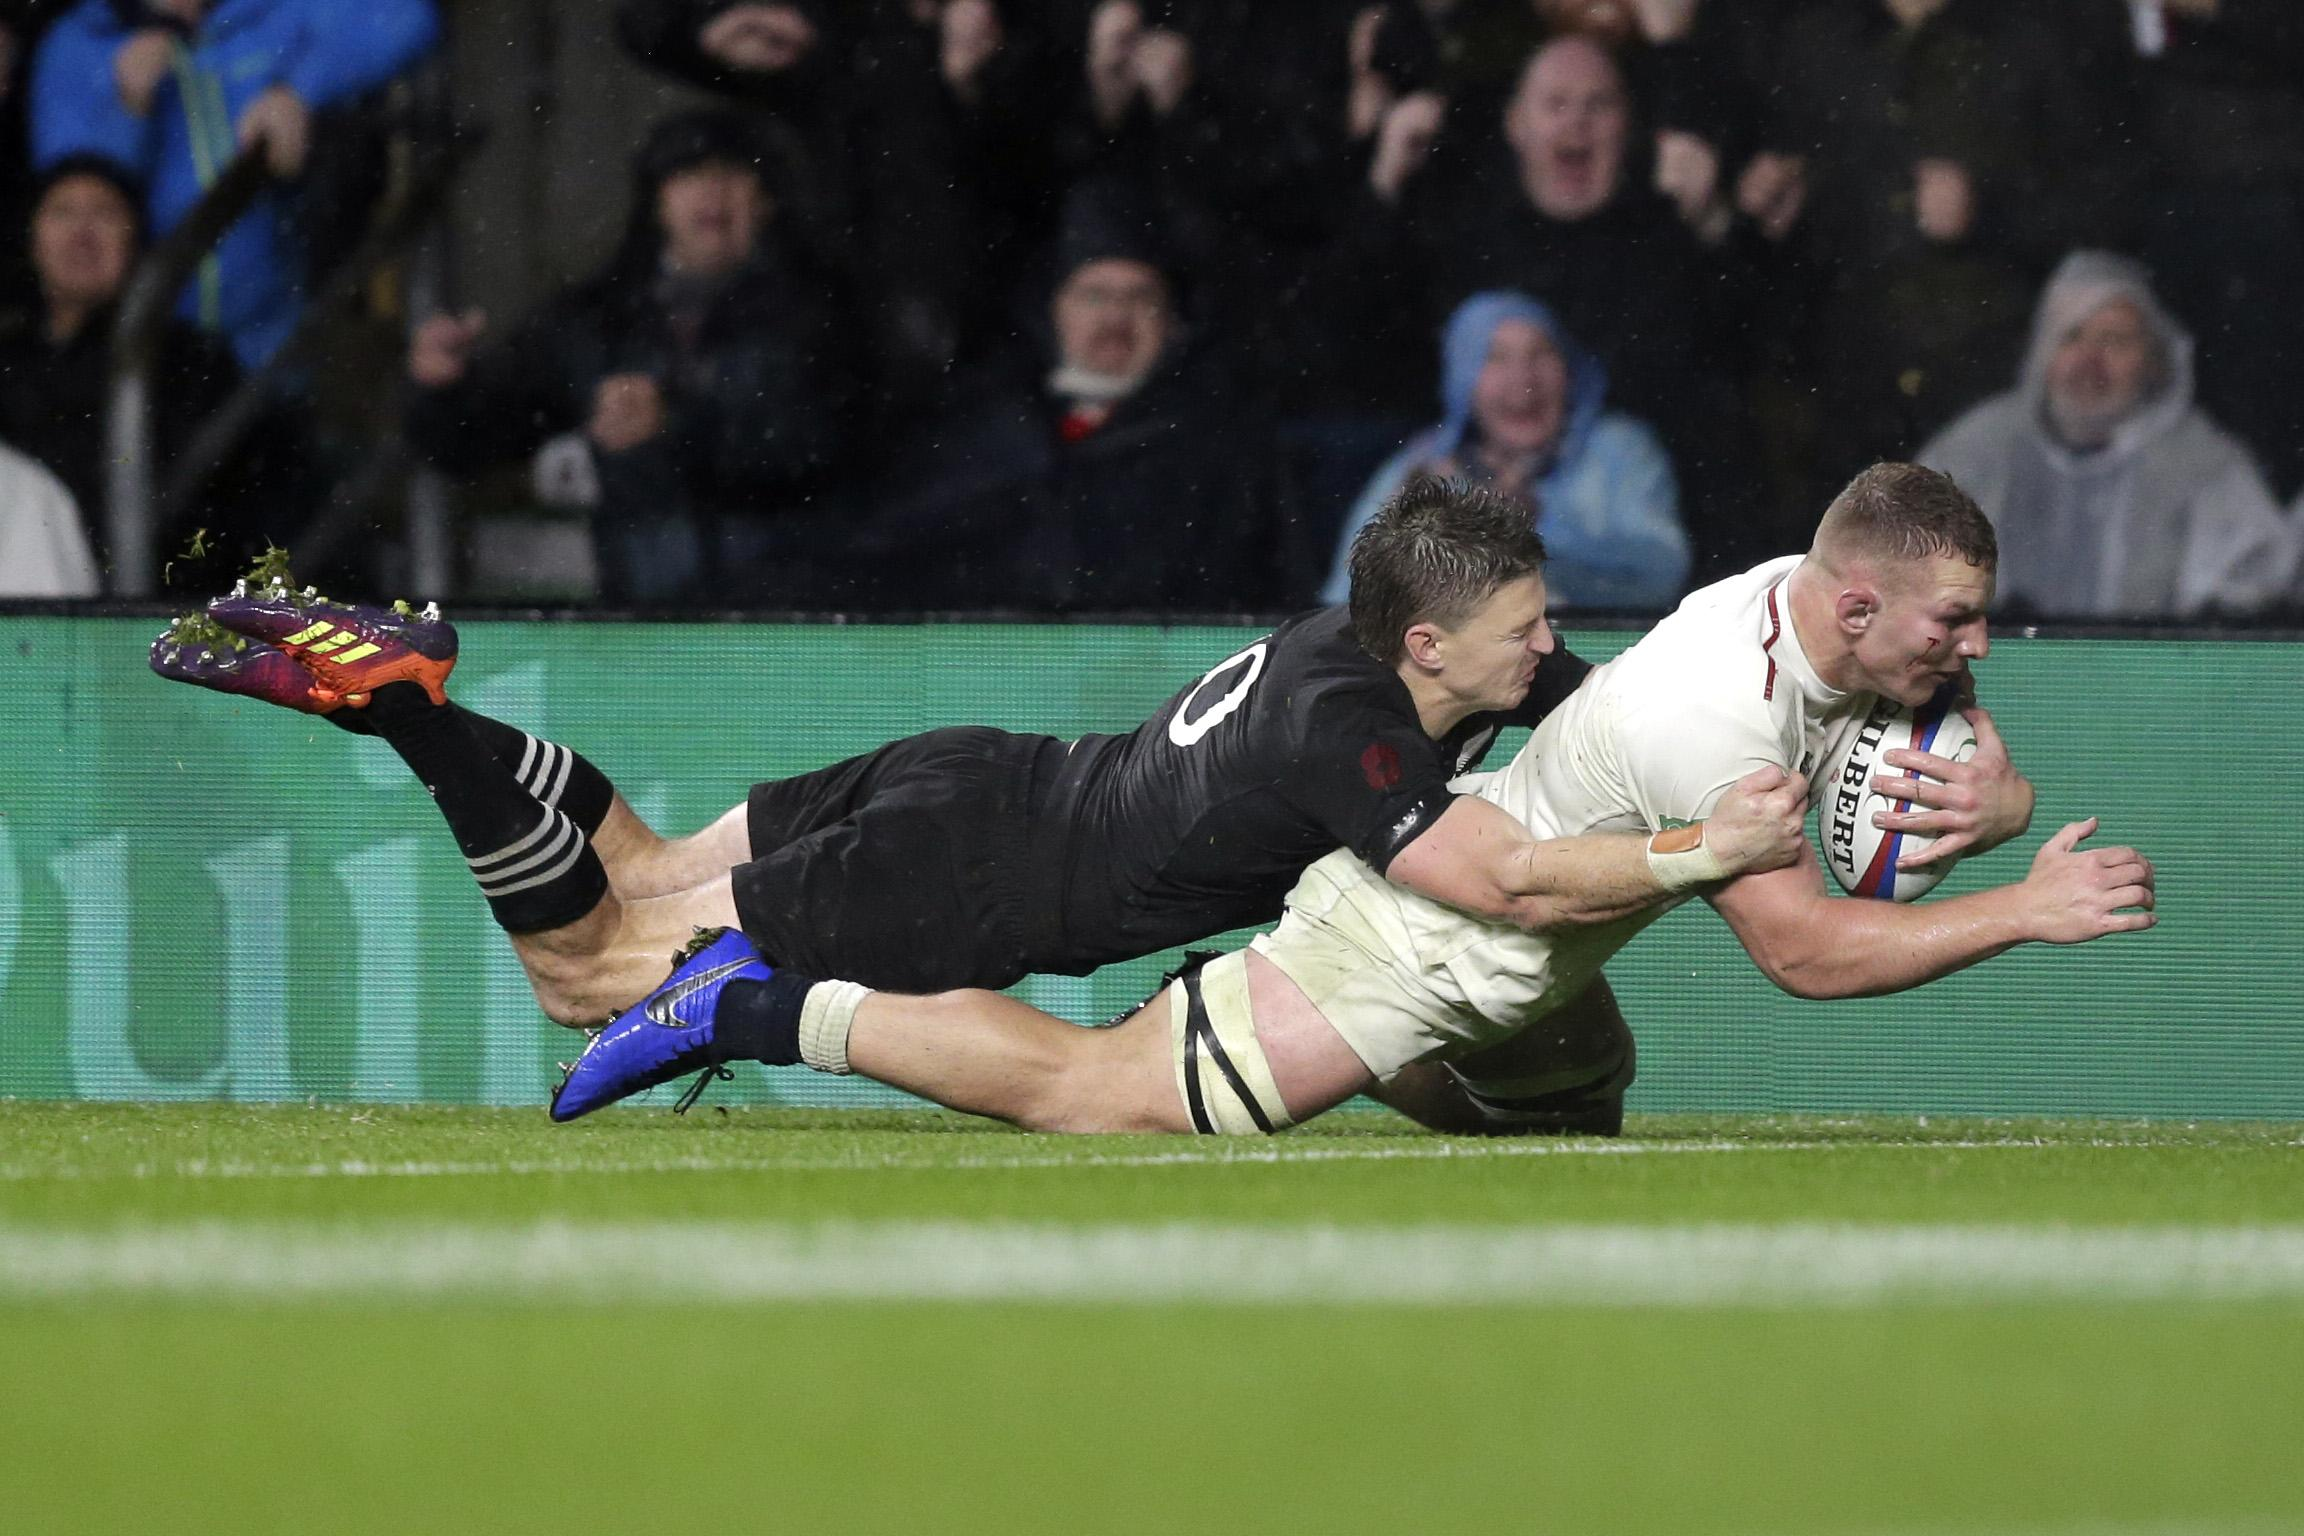 Sam Underhill was denied a 10/10 performance by the TMO as his late try was ruled out for offside